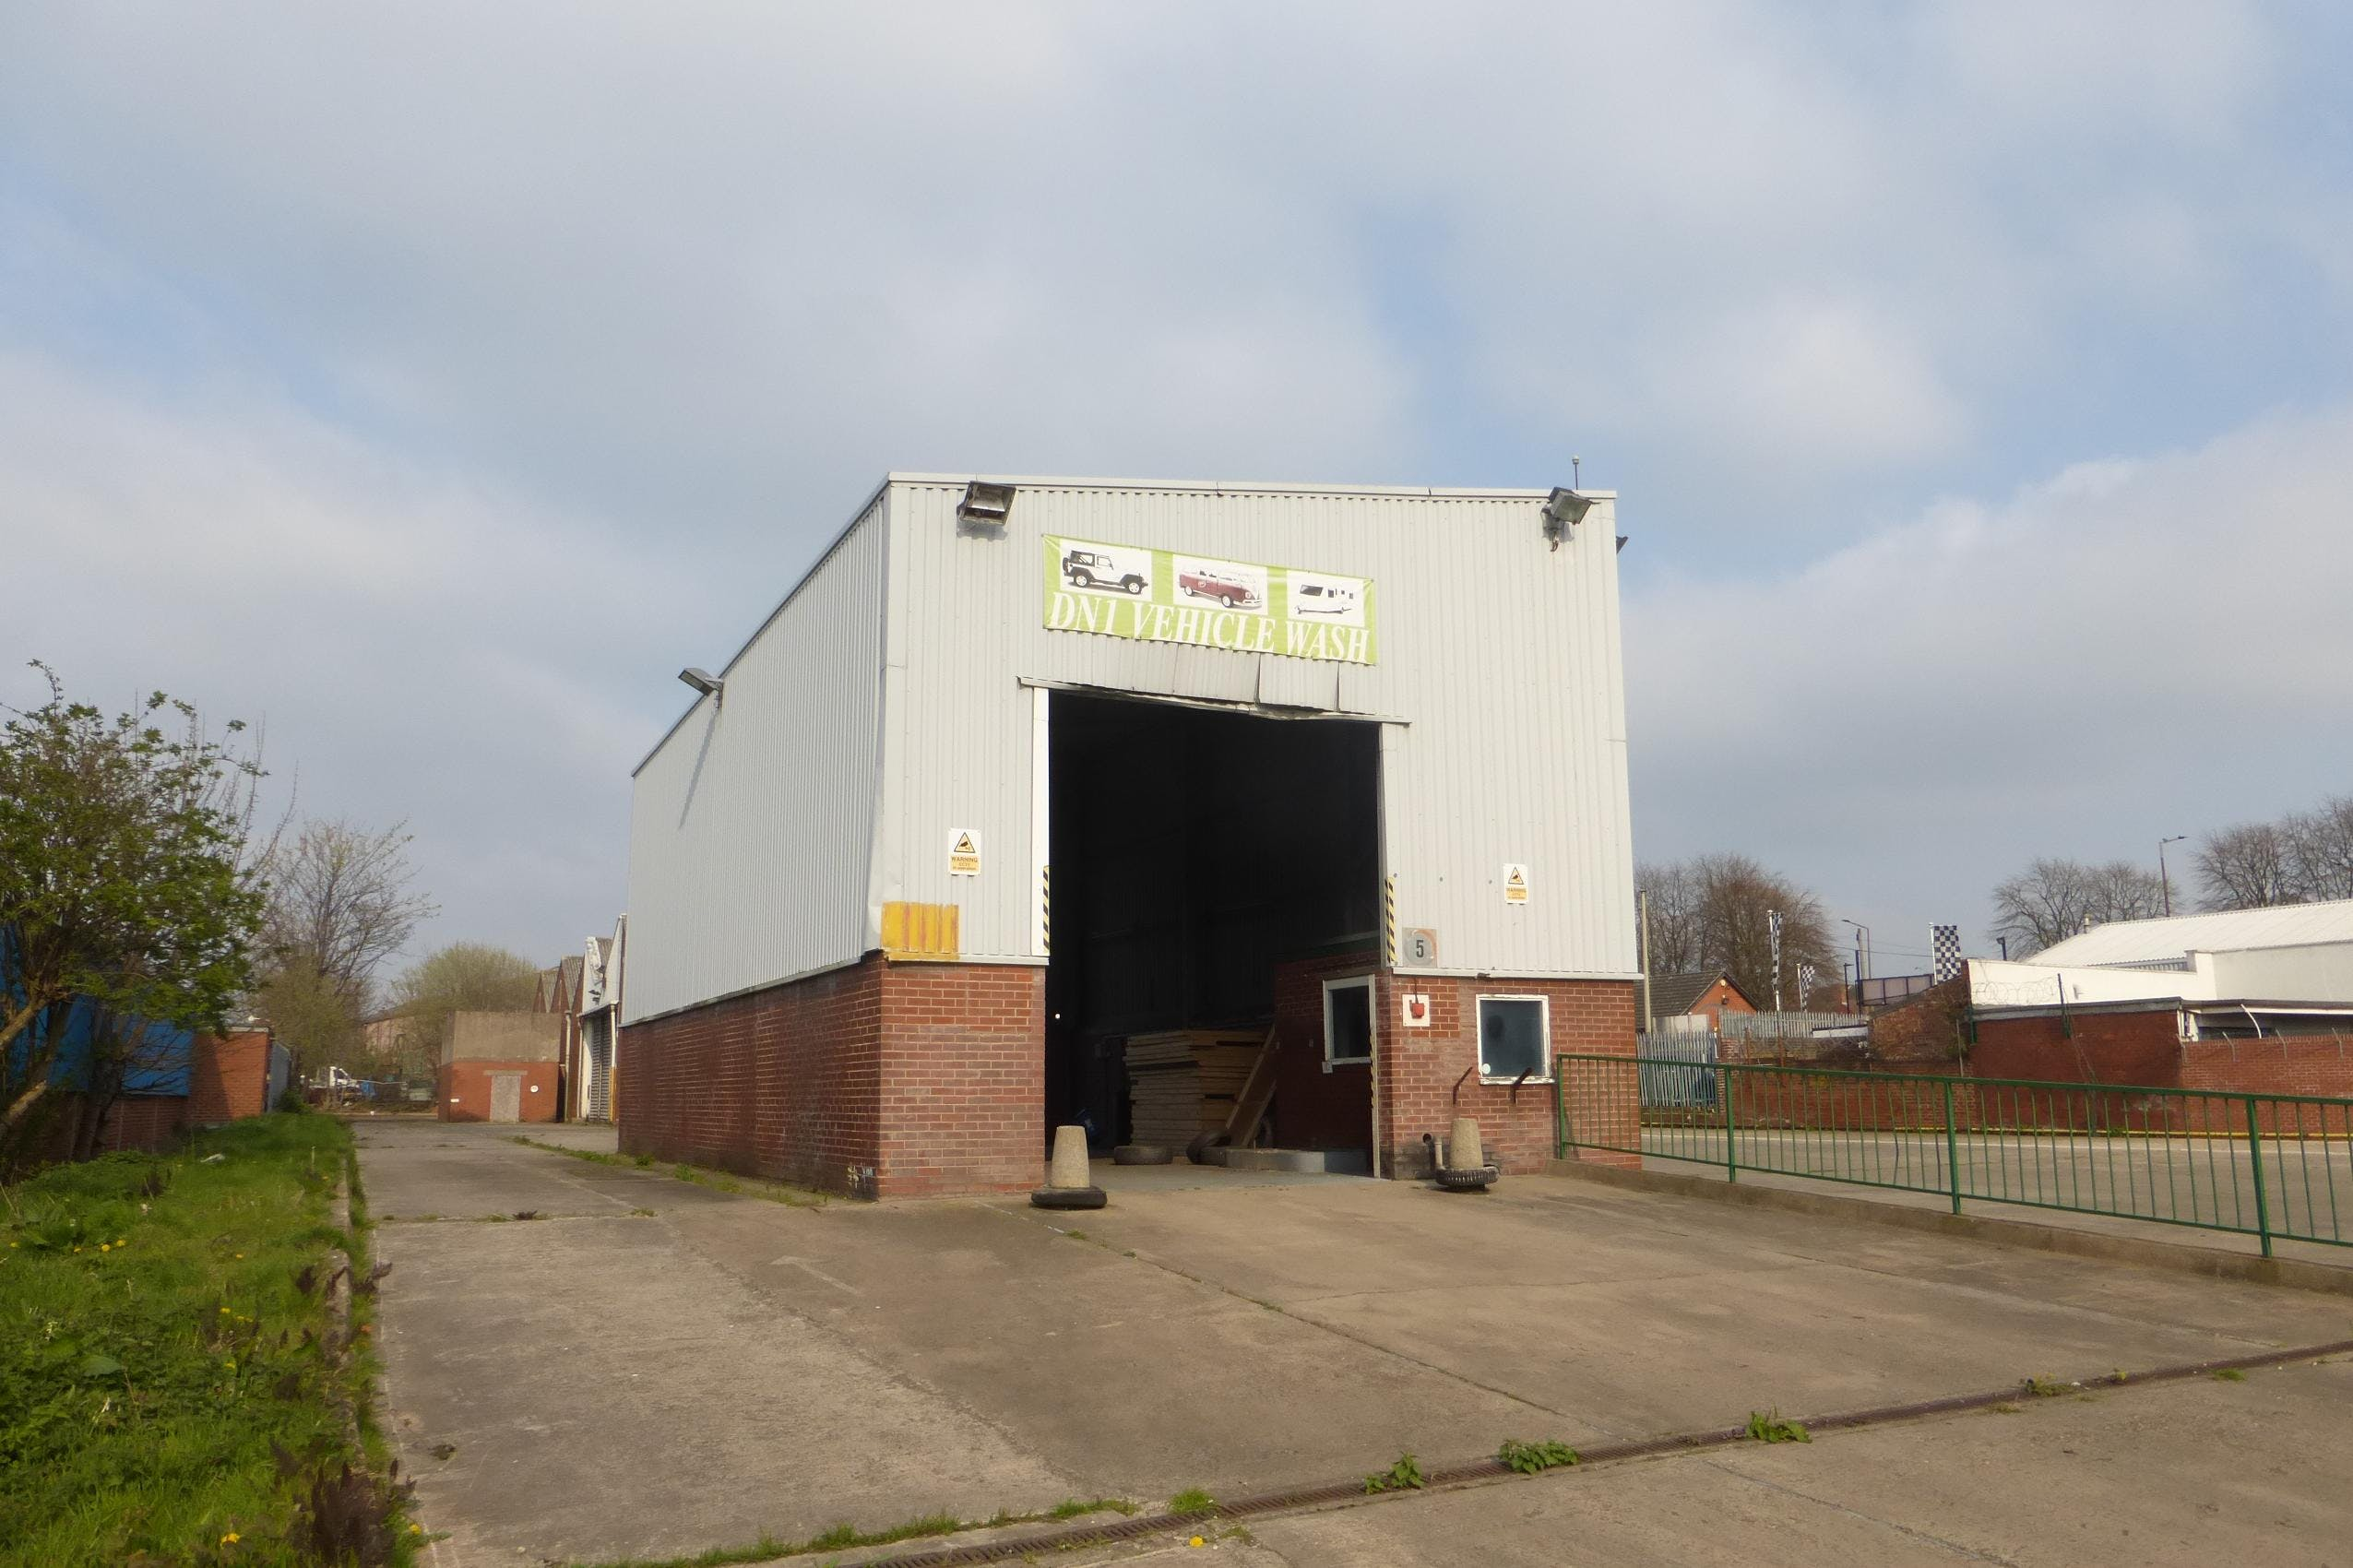 Milethorn Works, Milethorn Lane, Doncaster, Warehouse & Industrial To Let - Wash bay and yard